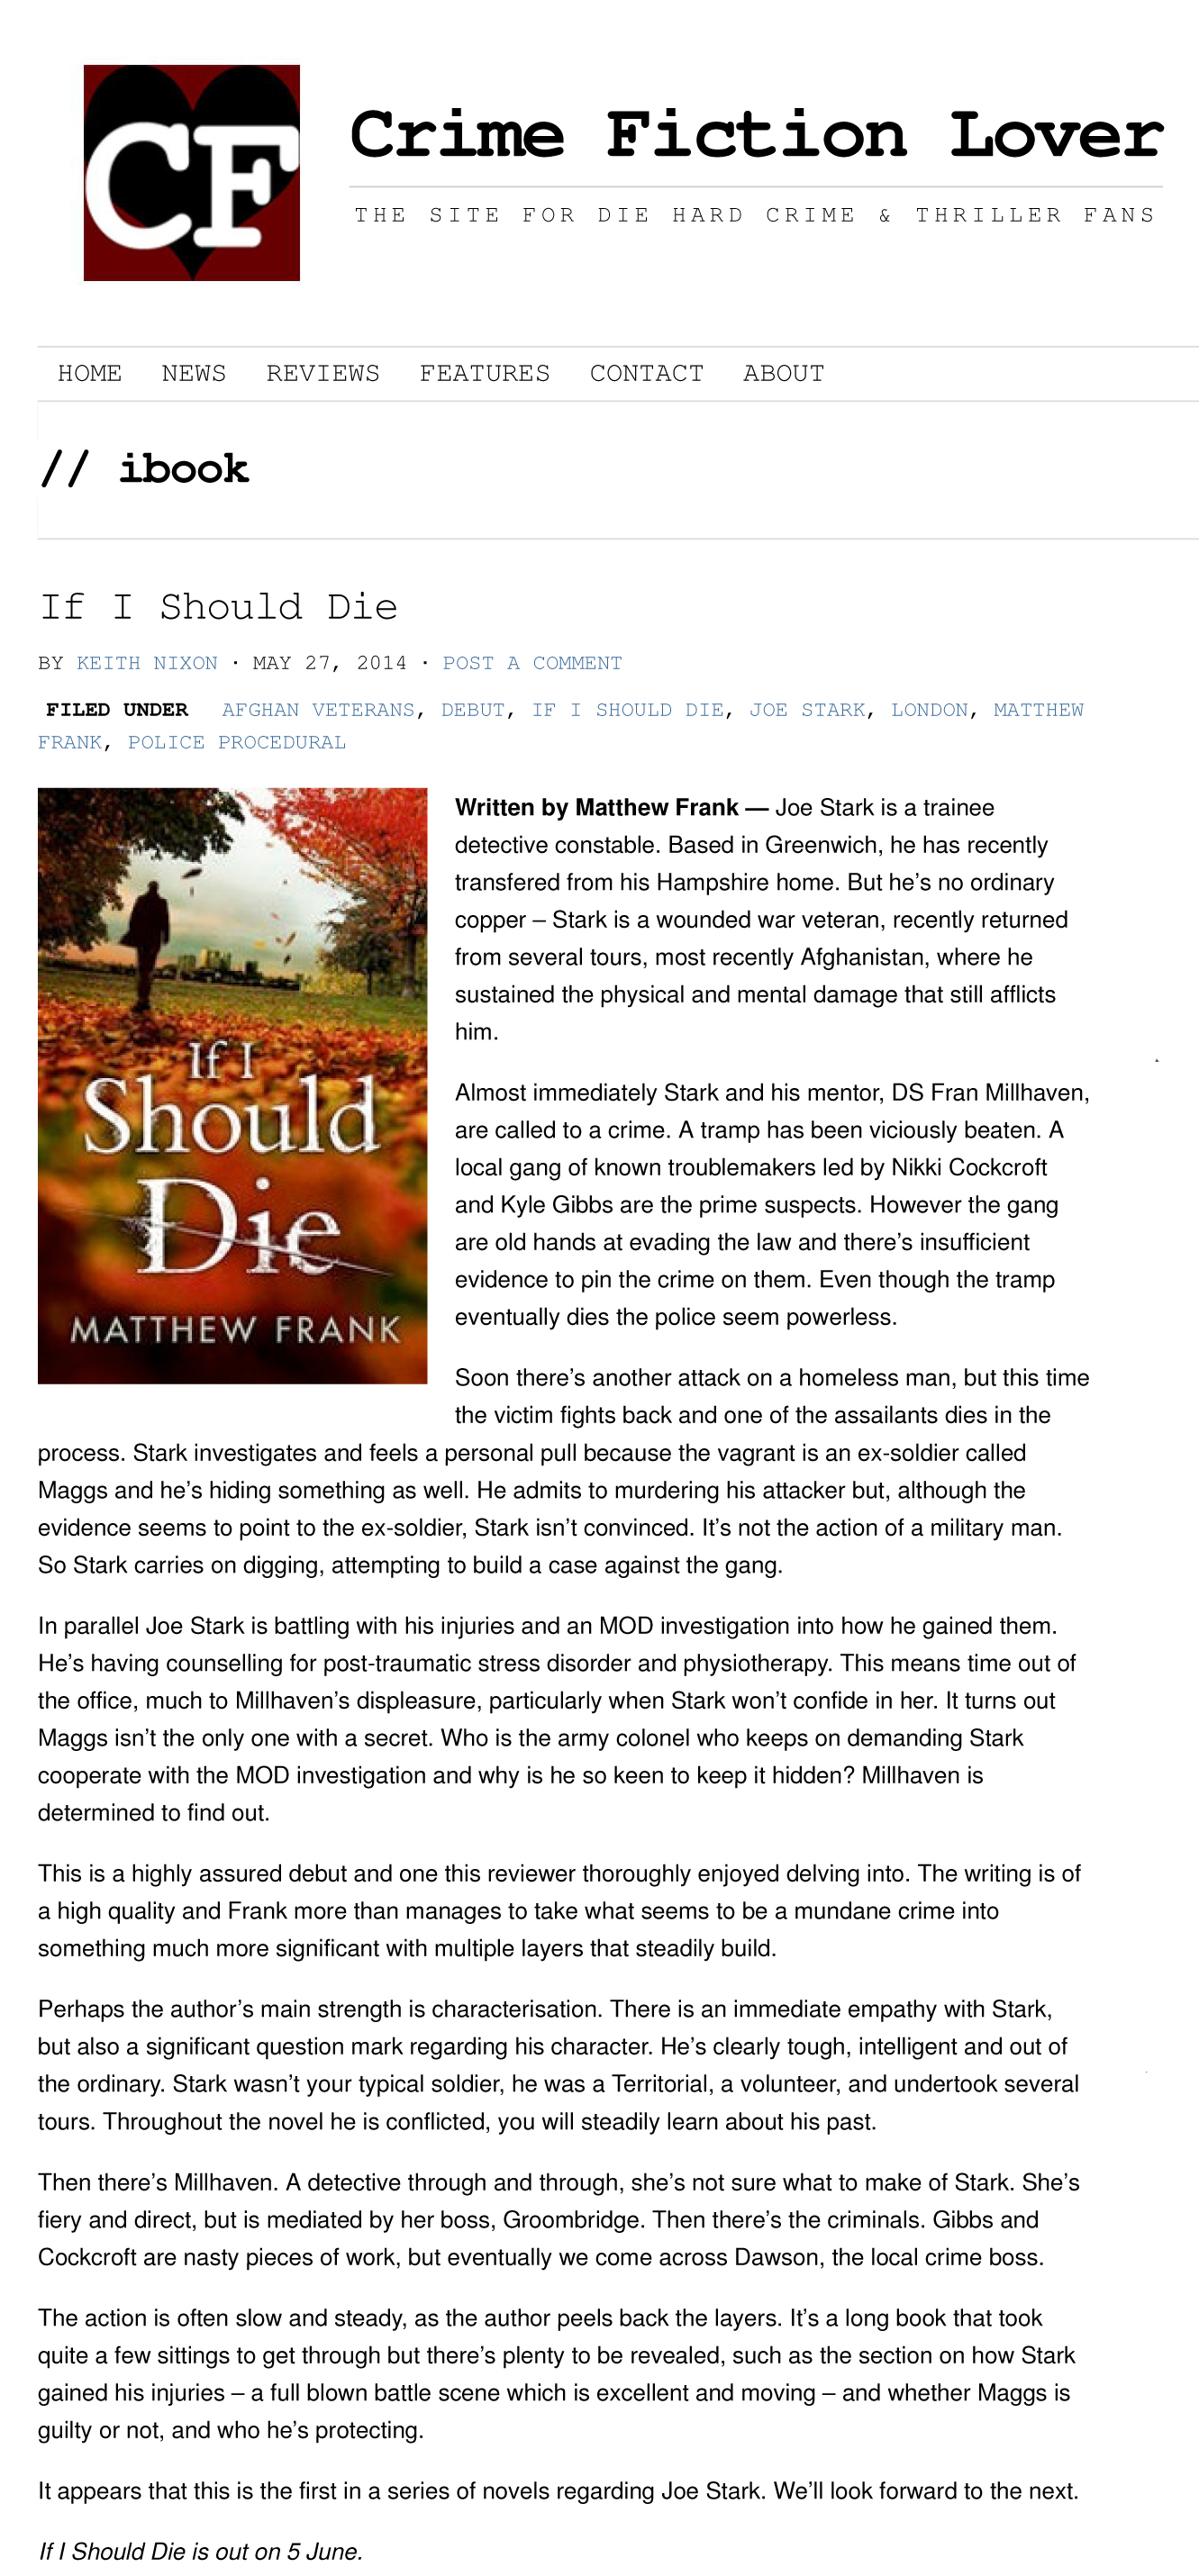 If I Should Die | Crime Fiction Lover